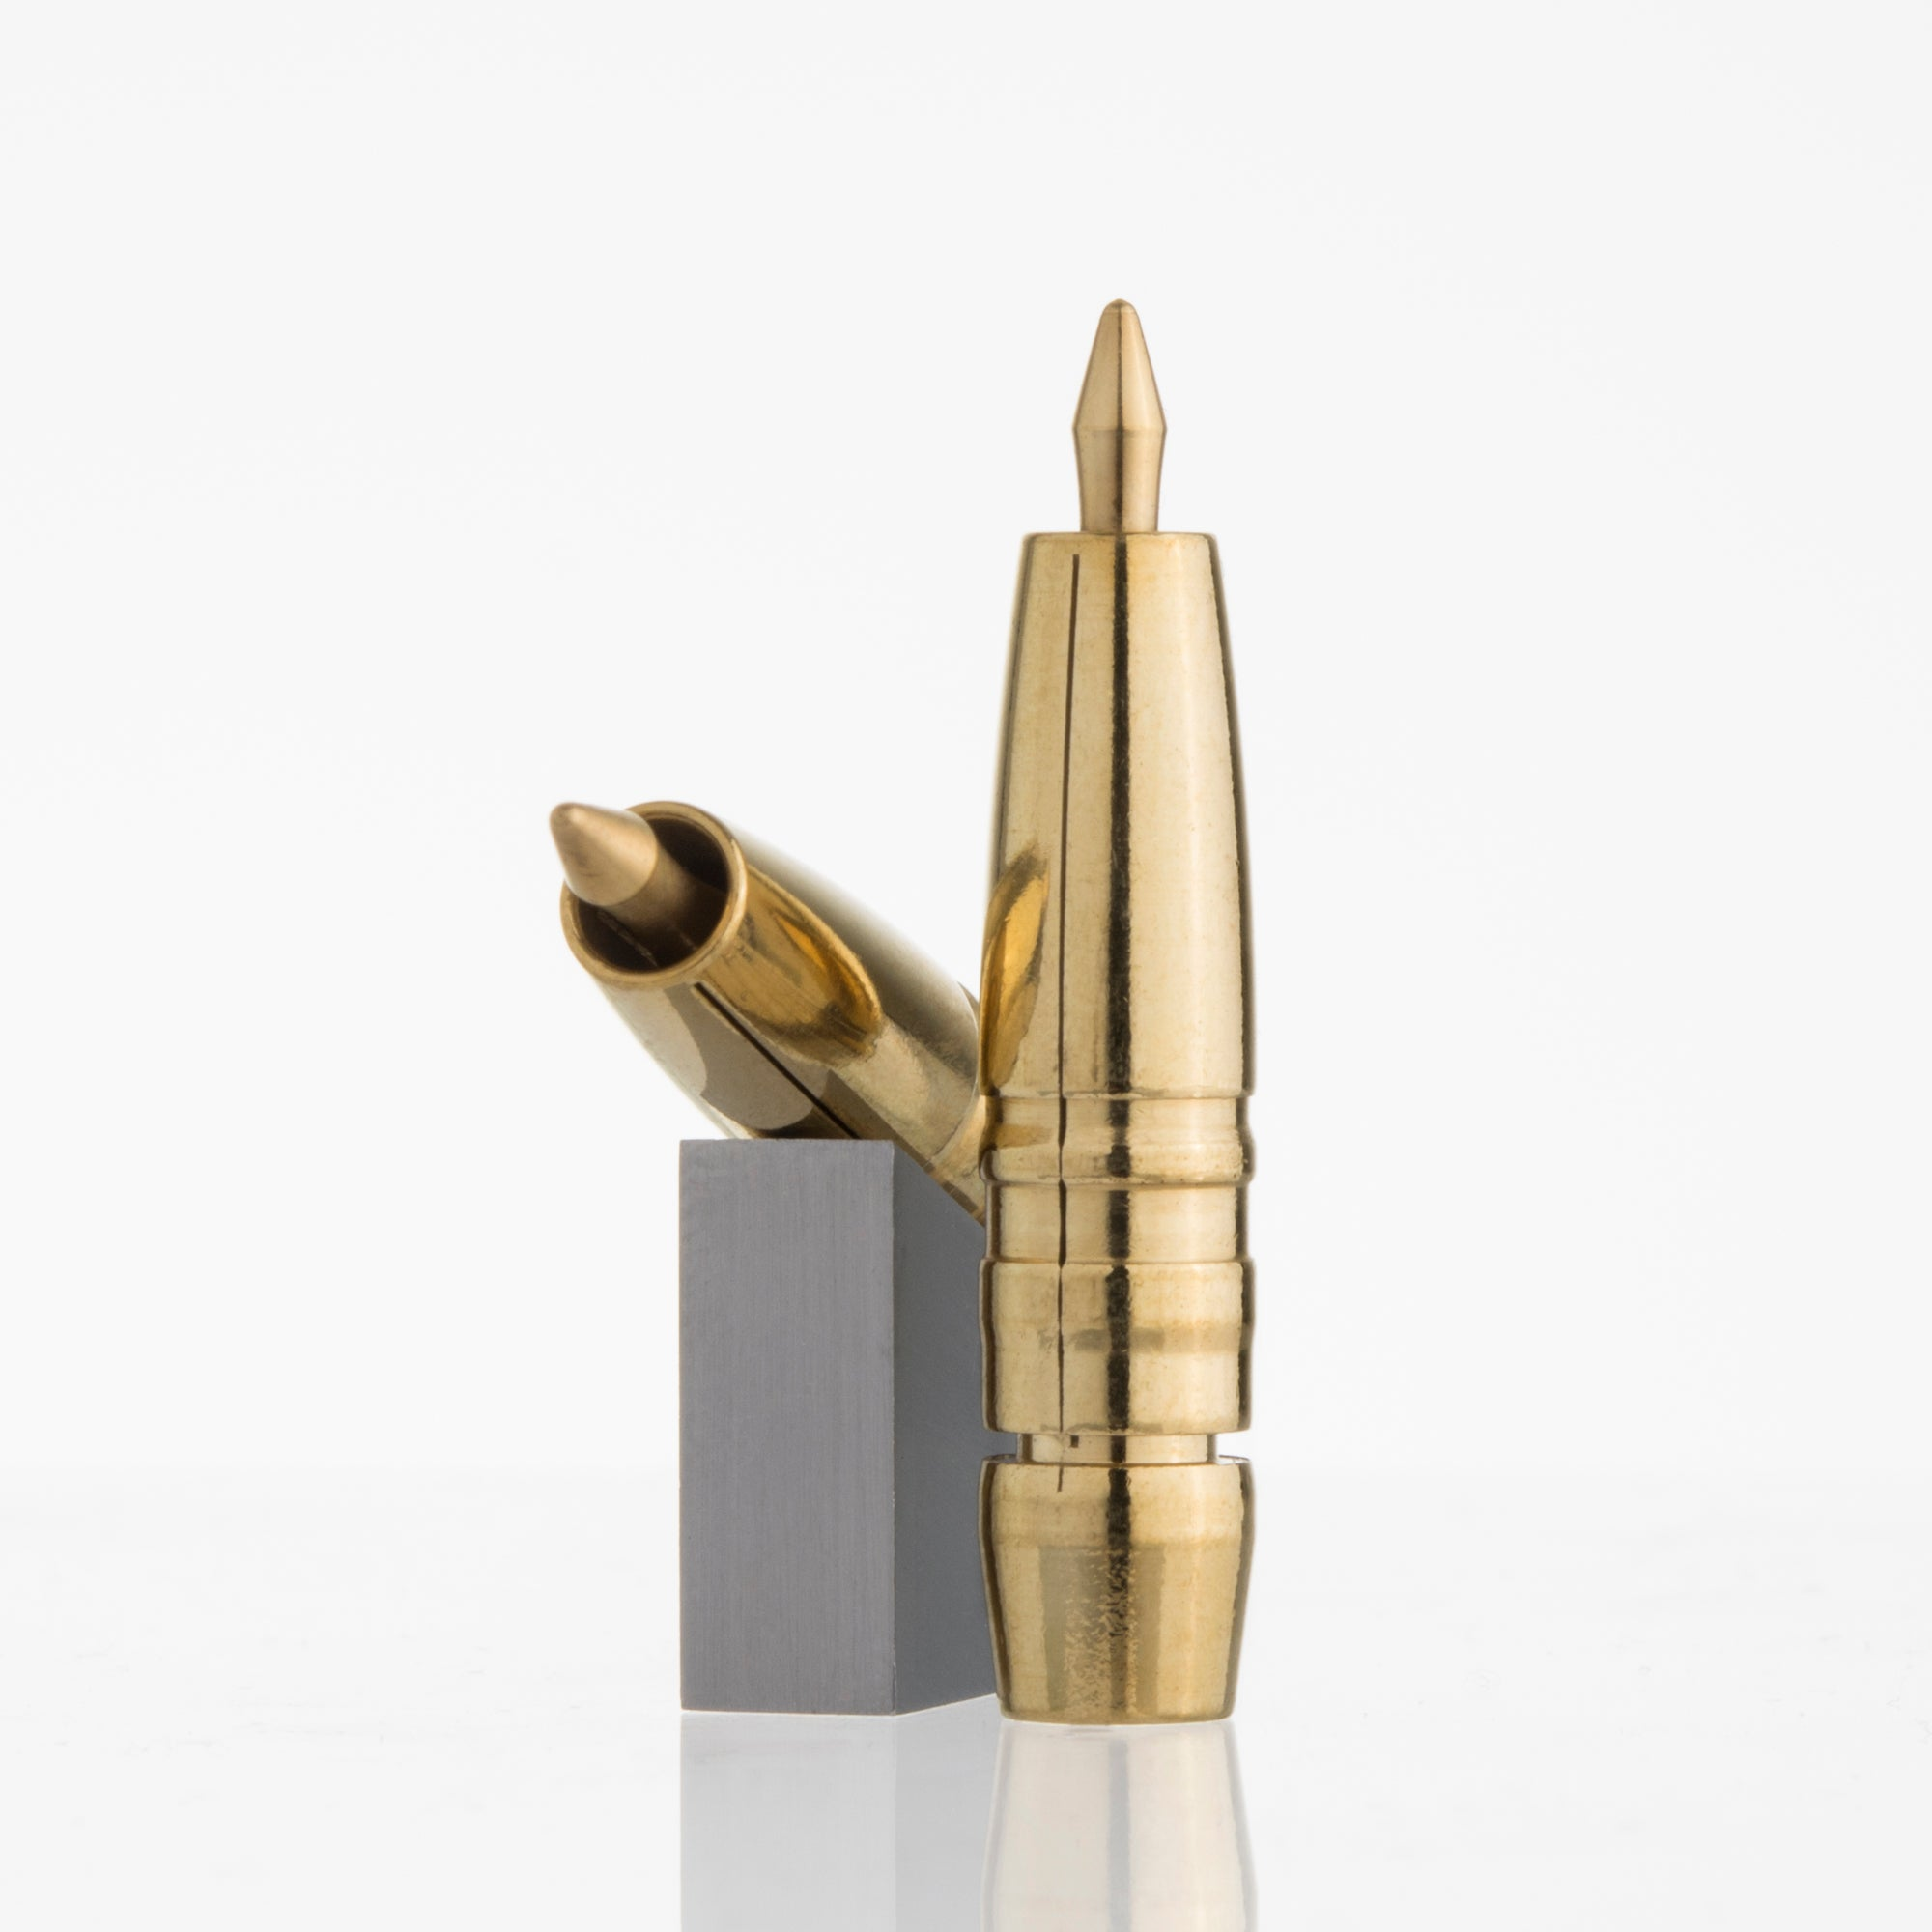 .308 Controlled Fracturing 168gr Subsonic Bullet for the 300 Blackout/Whisper